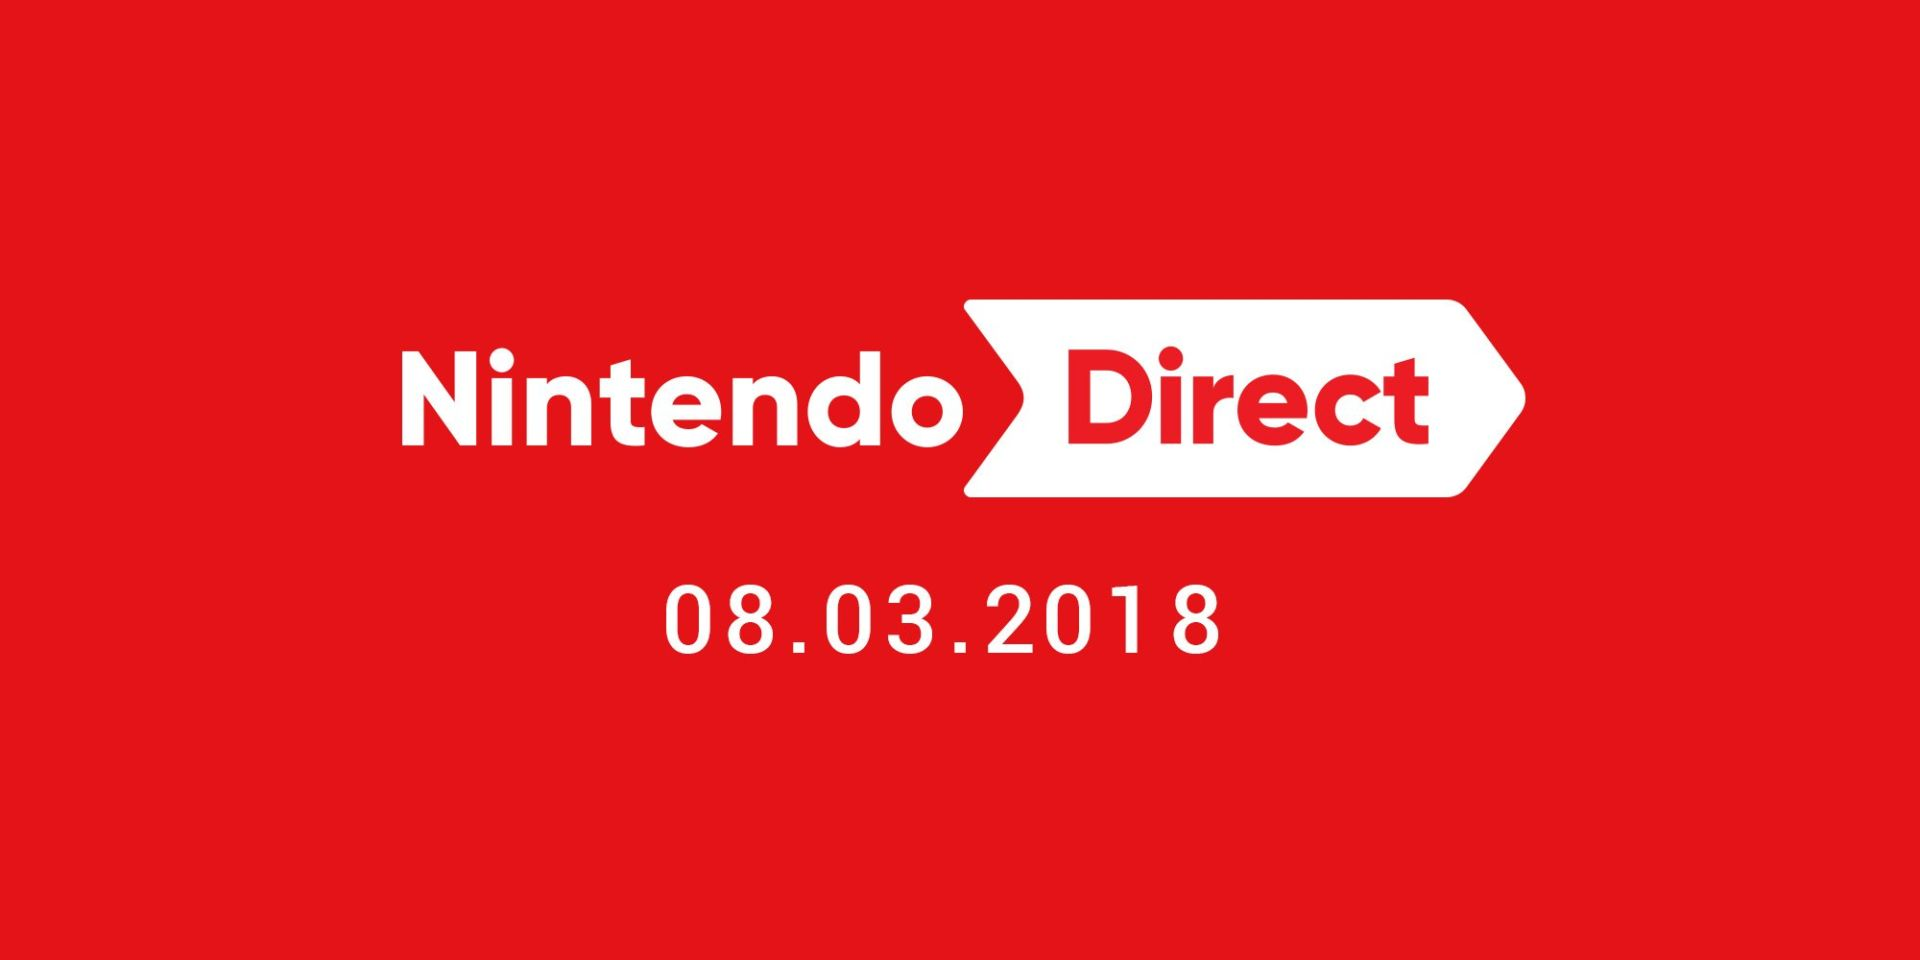 nintendo direct otto marzo 2018